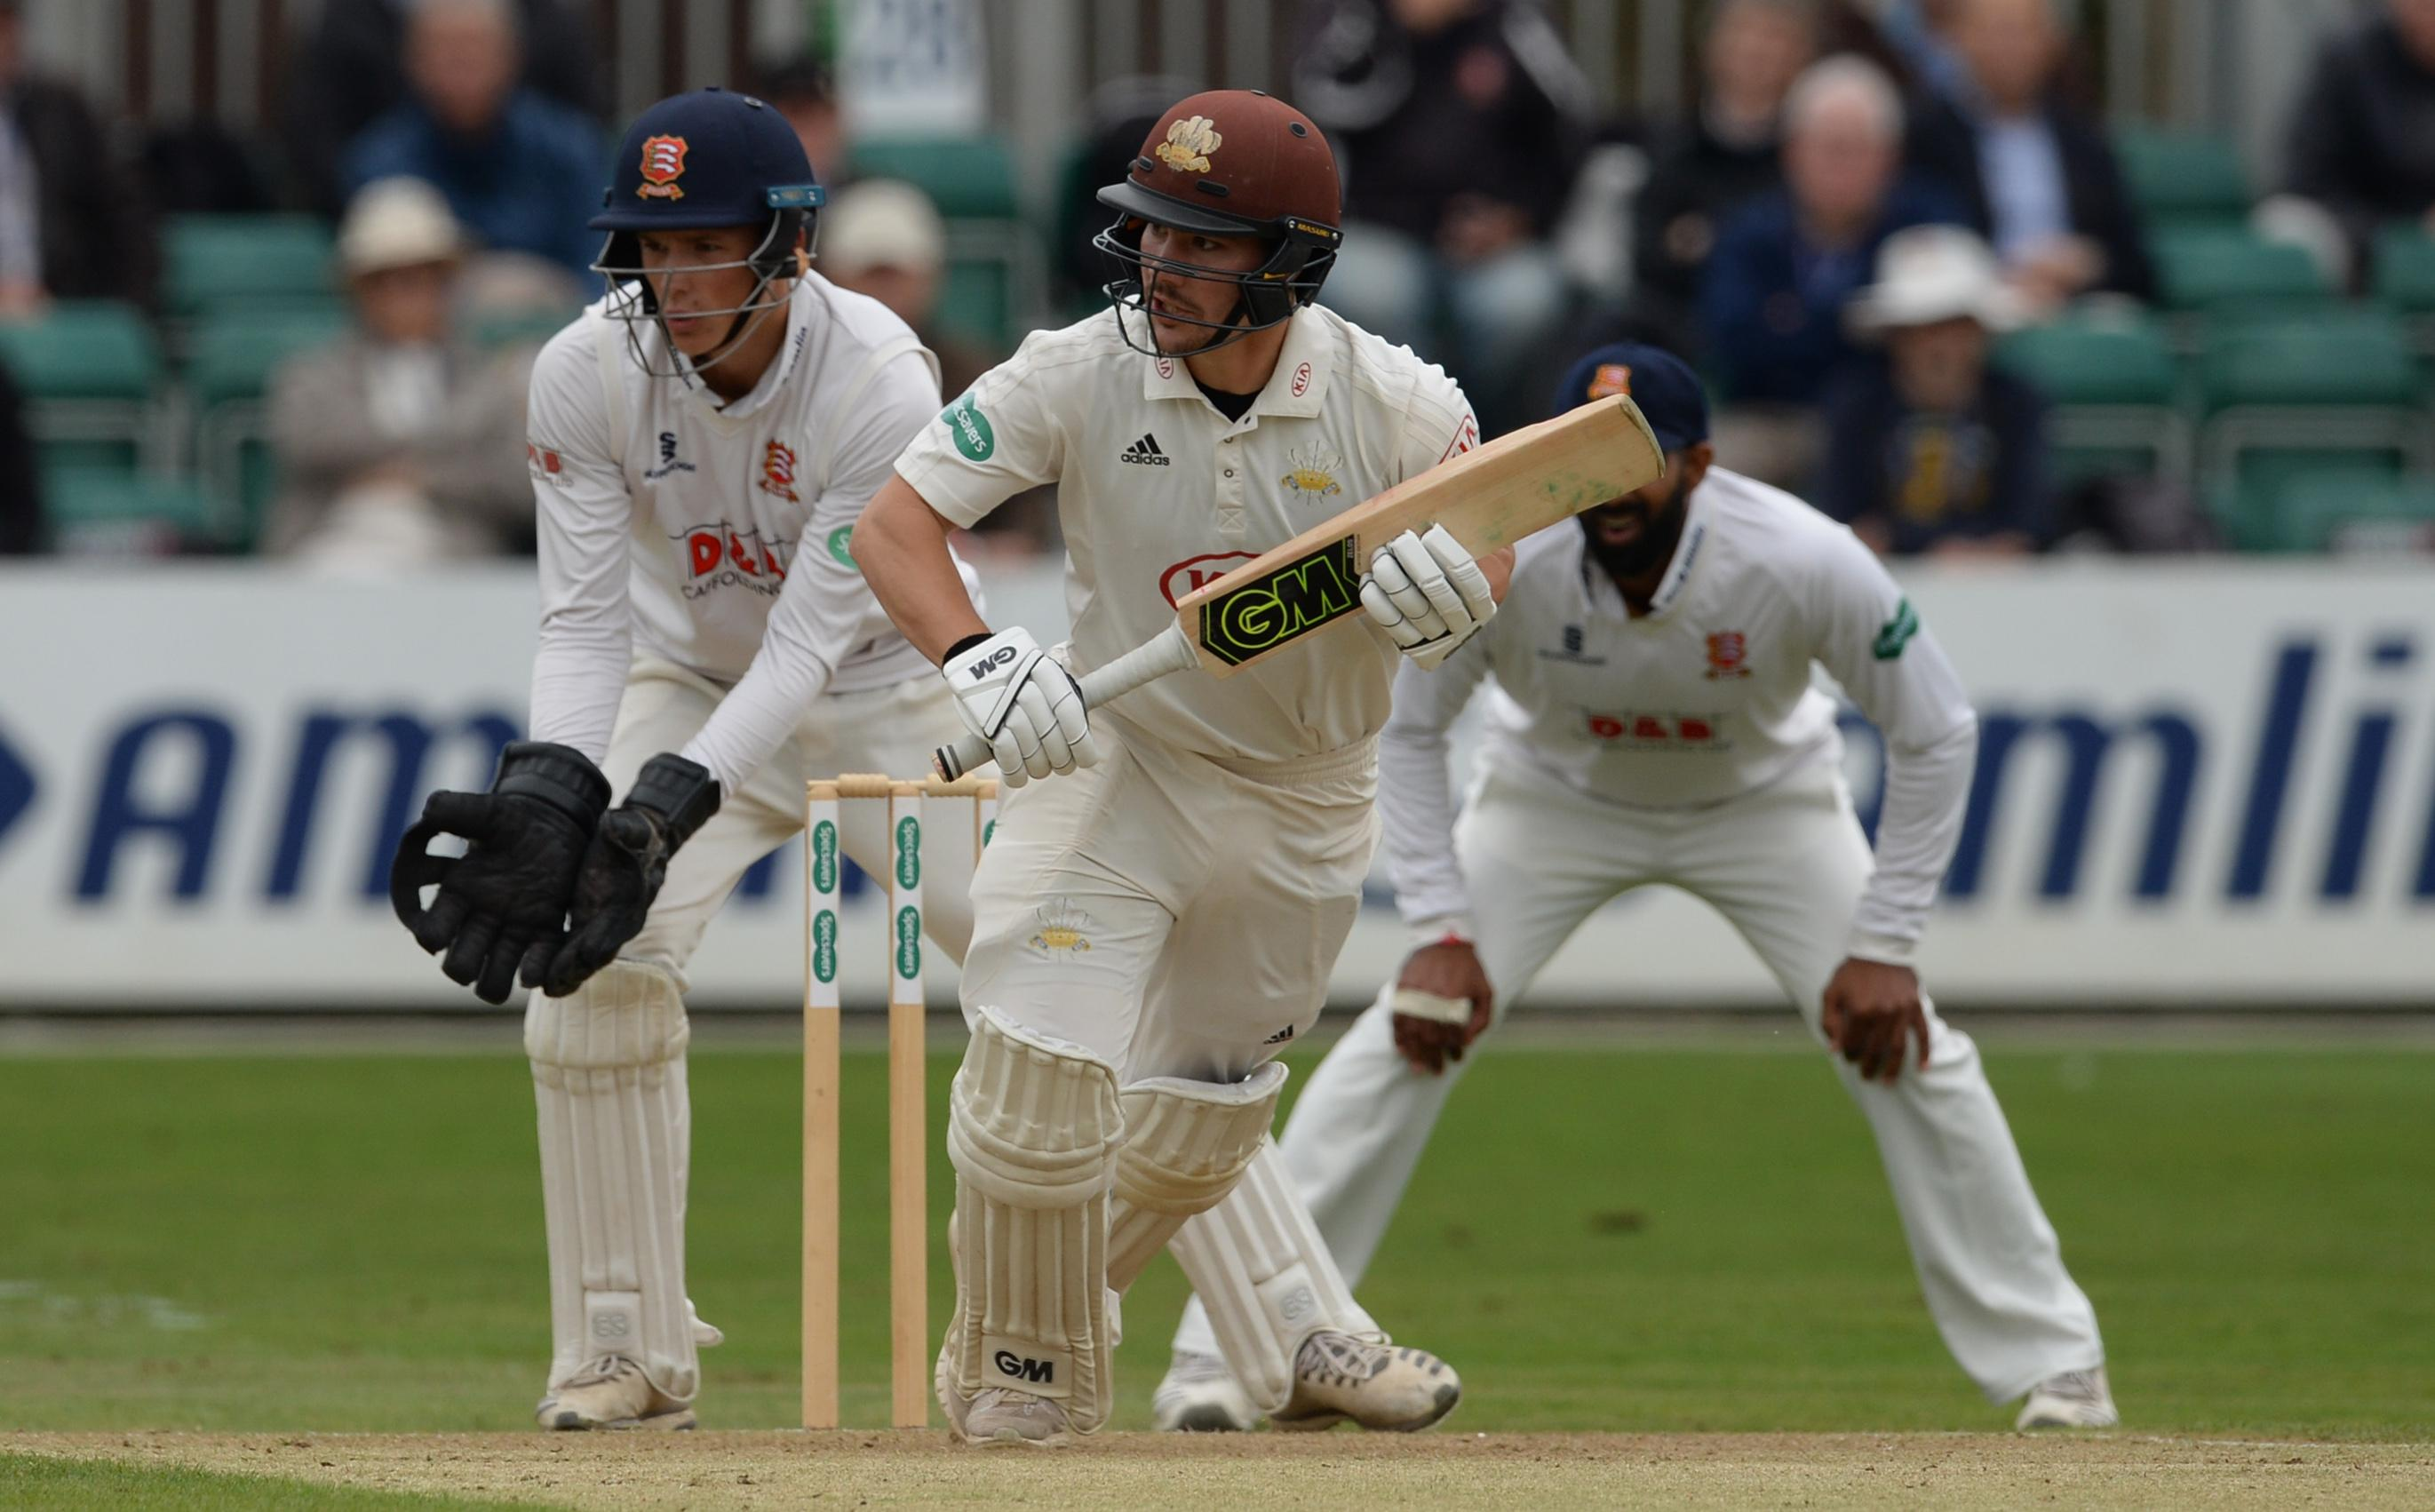 Rory Burns is set to open the batting for England in Sri Lanka next month